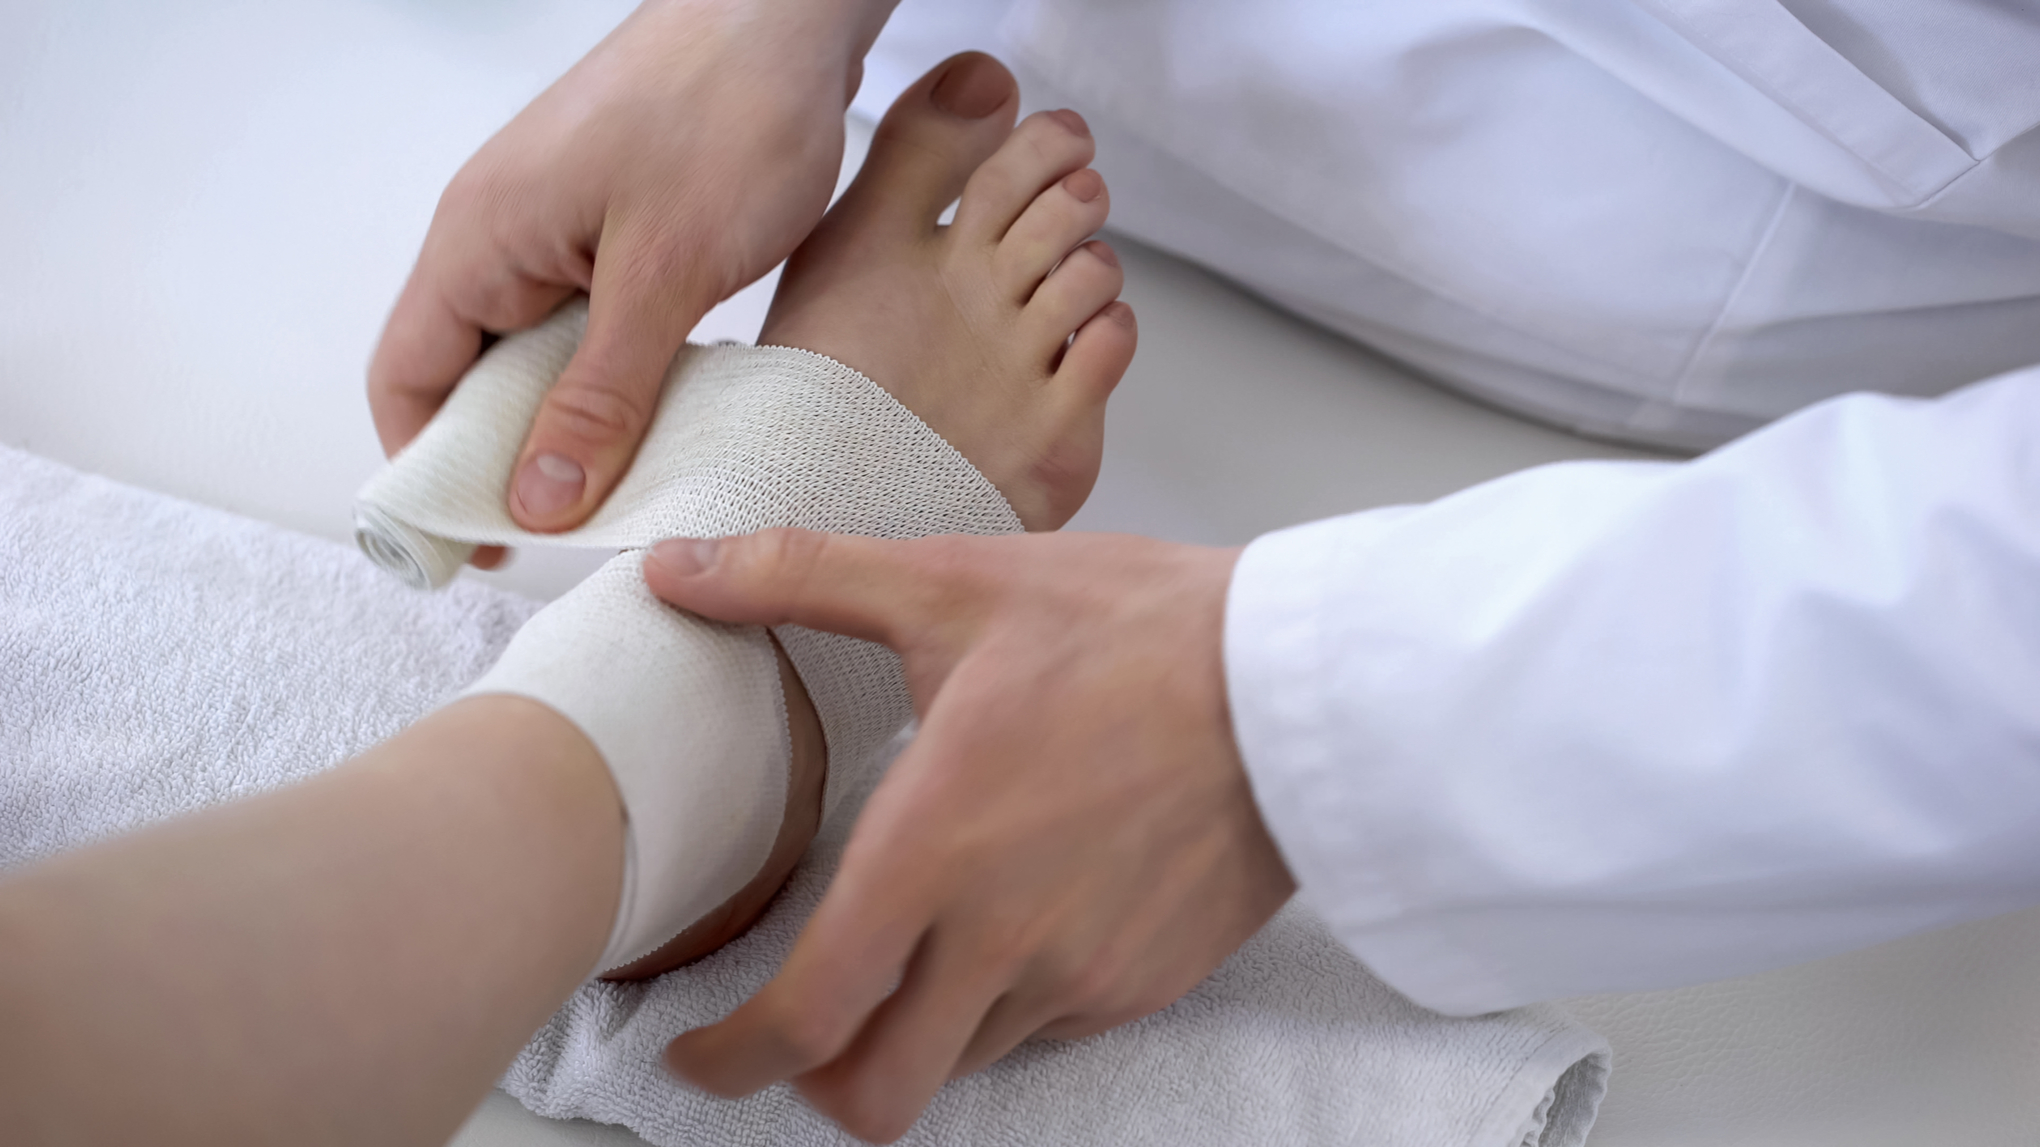 sprains and strains, Treating Sprains and Strains: Are You Doing It Wrong?